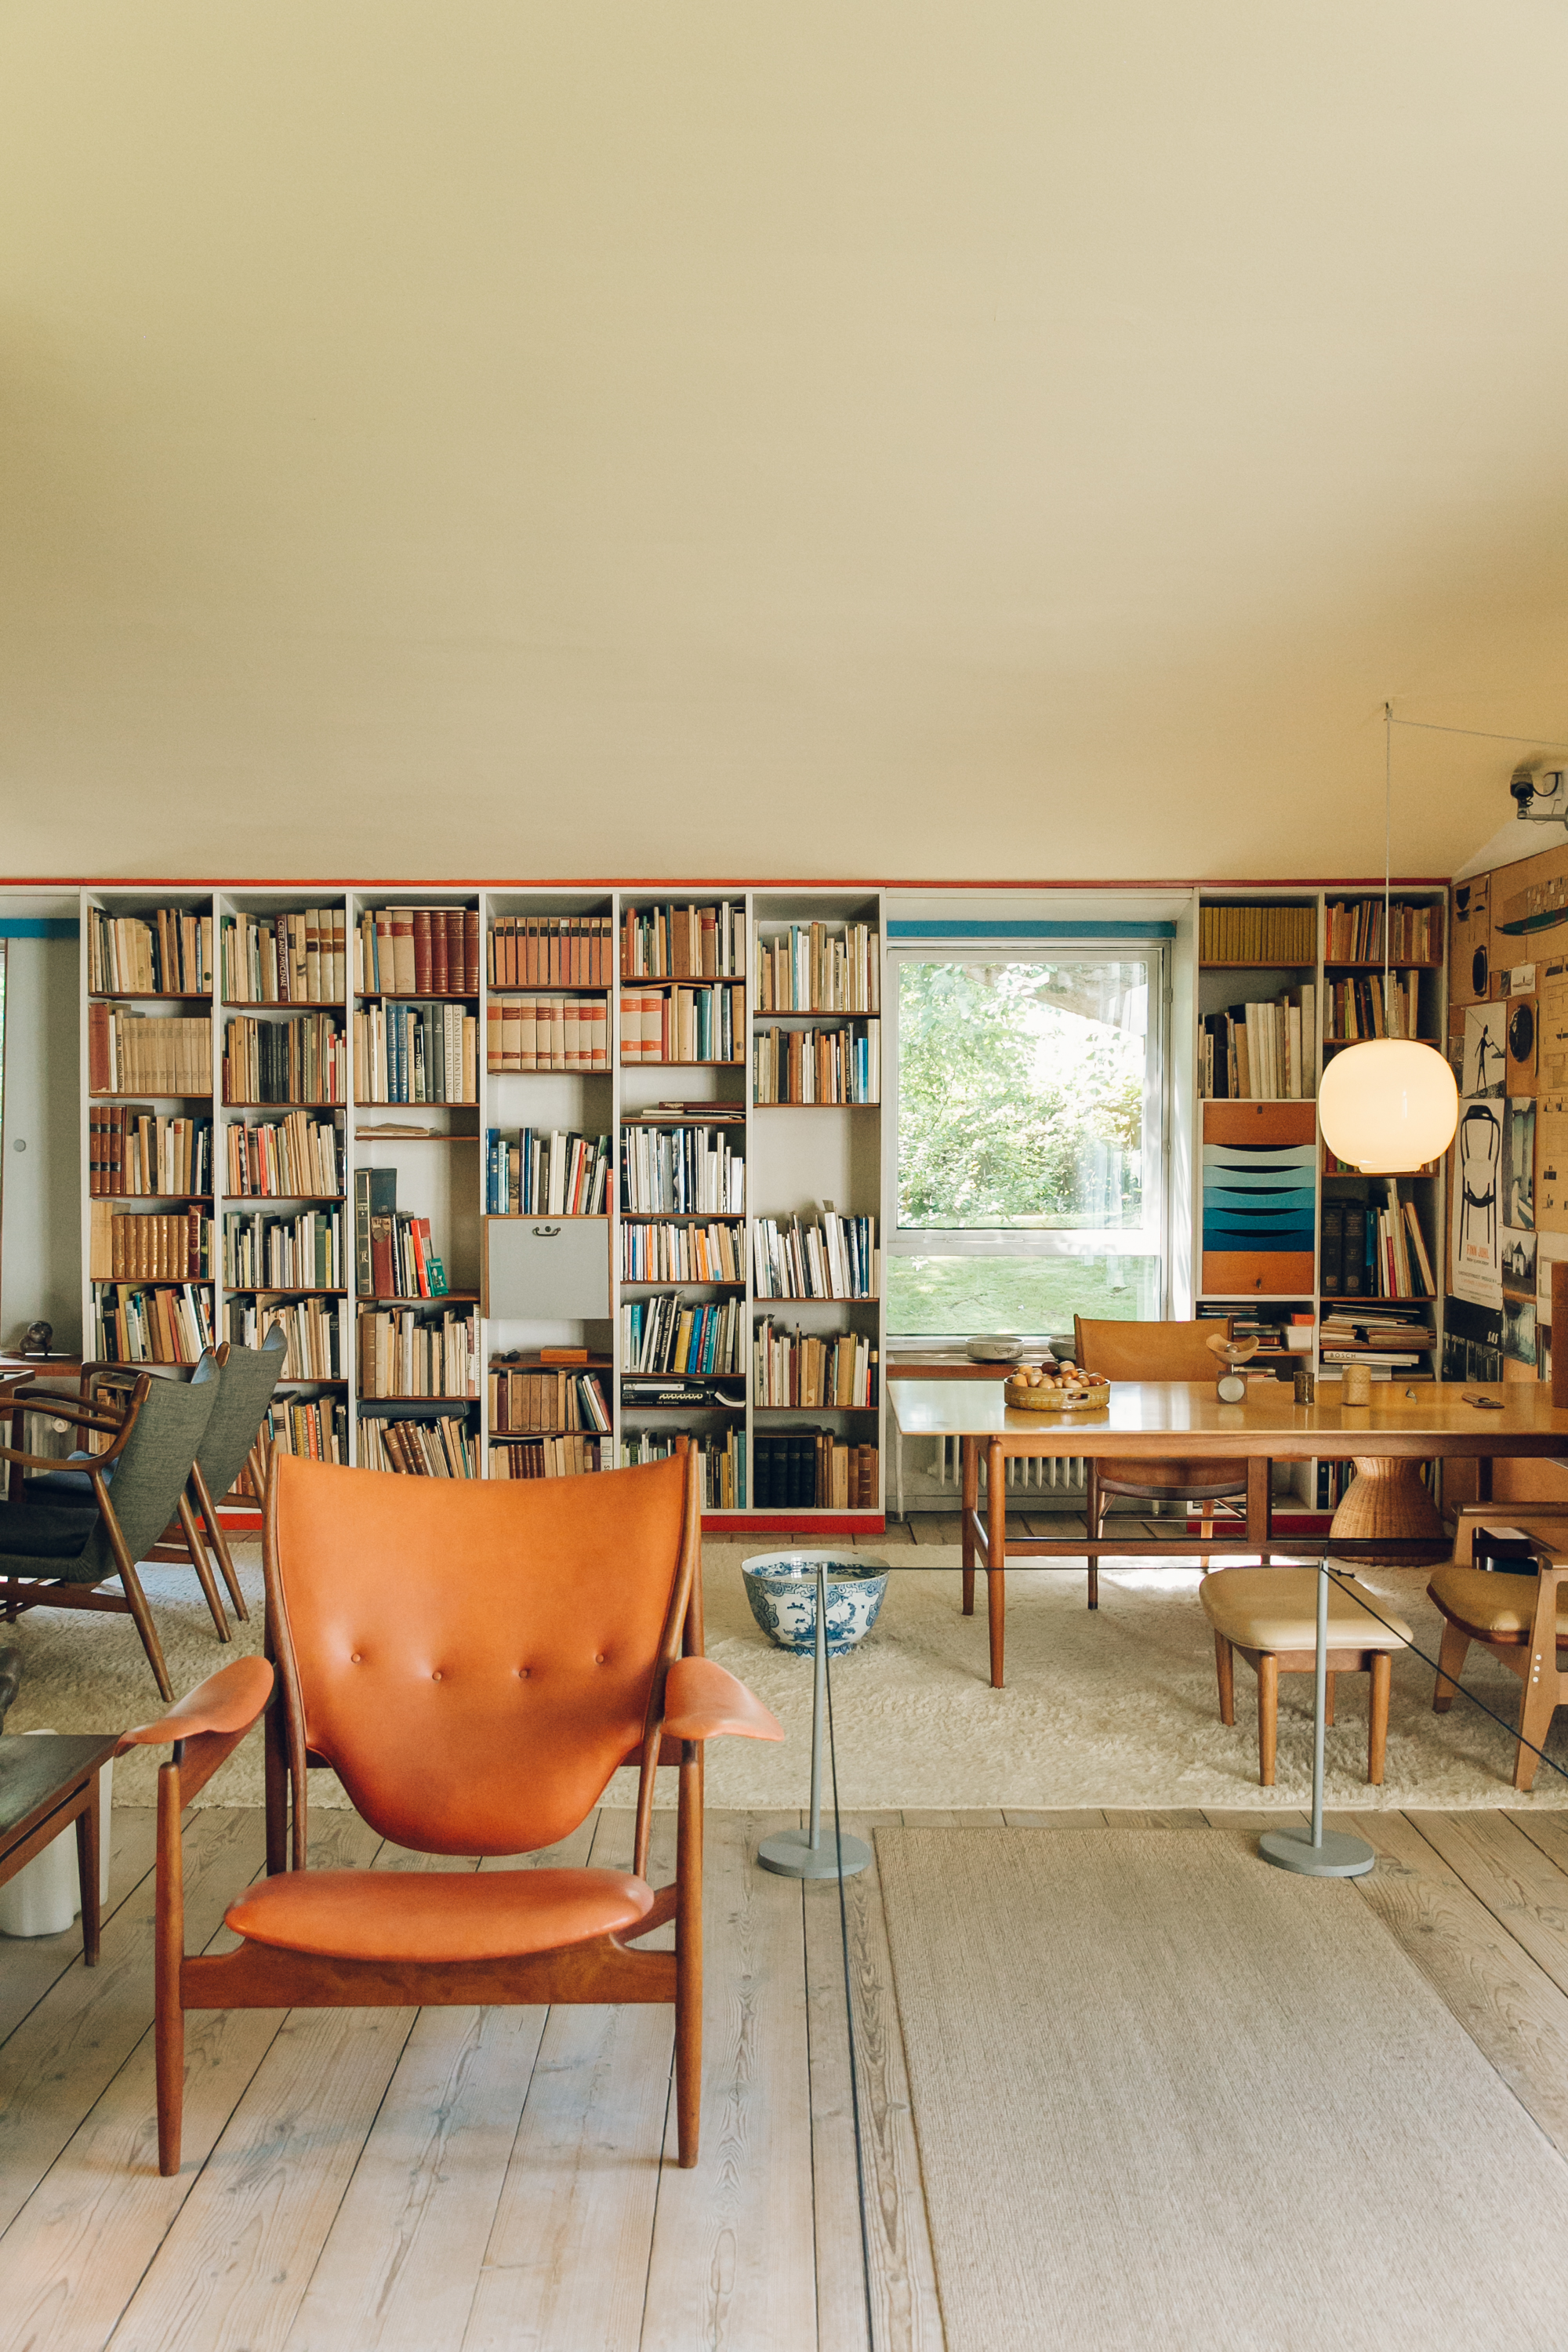 Living Room at Finn Juhl's House Copenhagen